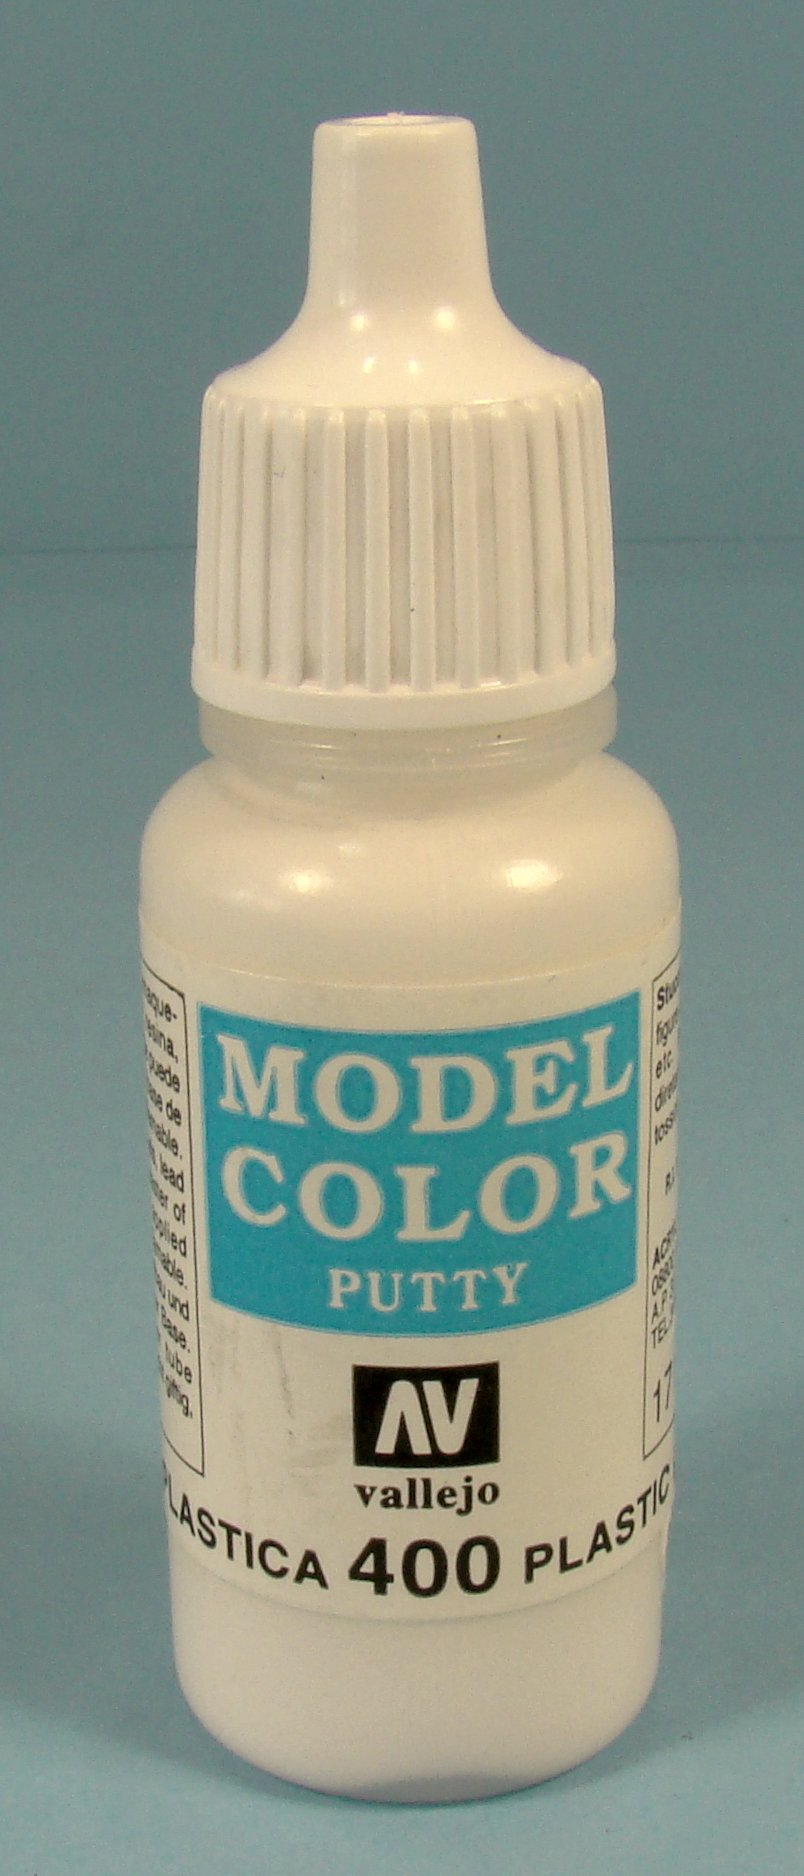 Vallejo plastic putty bottle